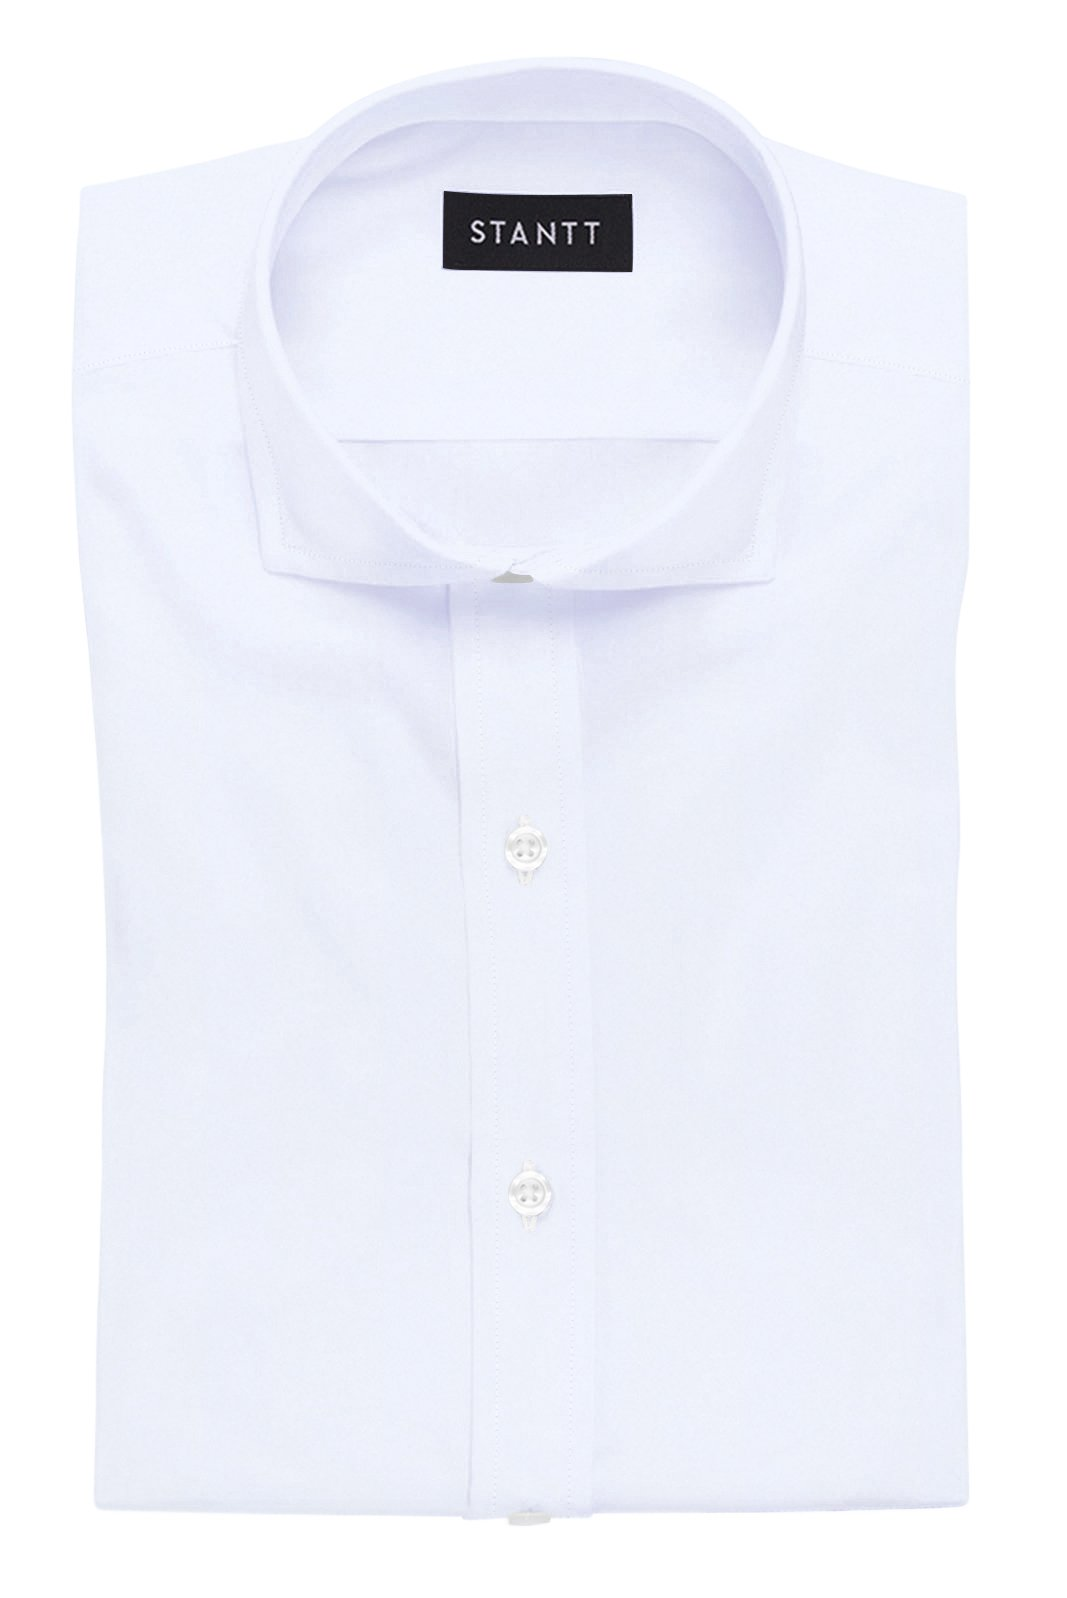 White Luxe Traveler's Twill: Cutaway Collar, French Cuff